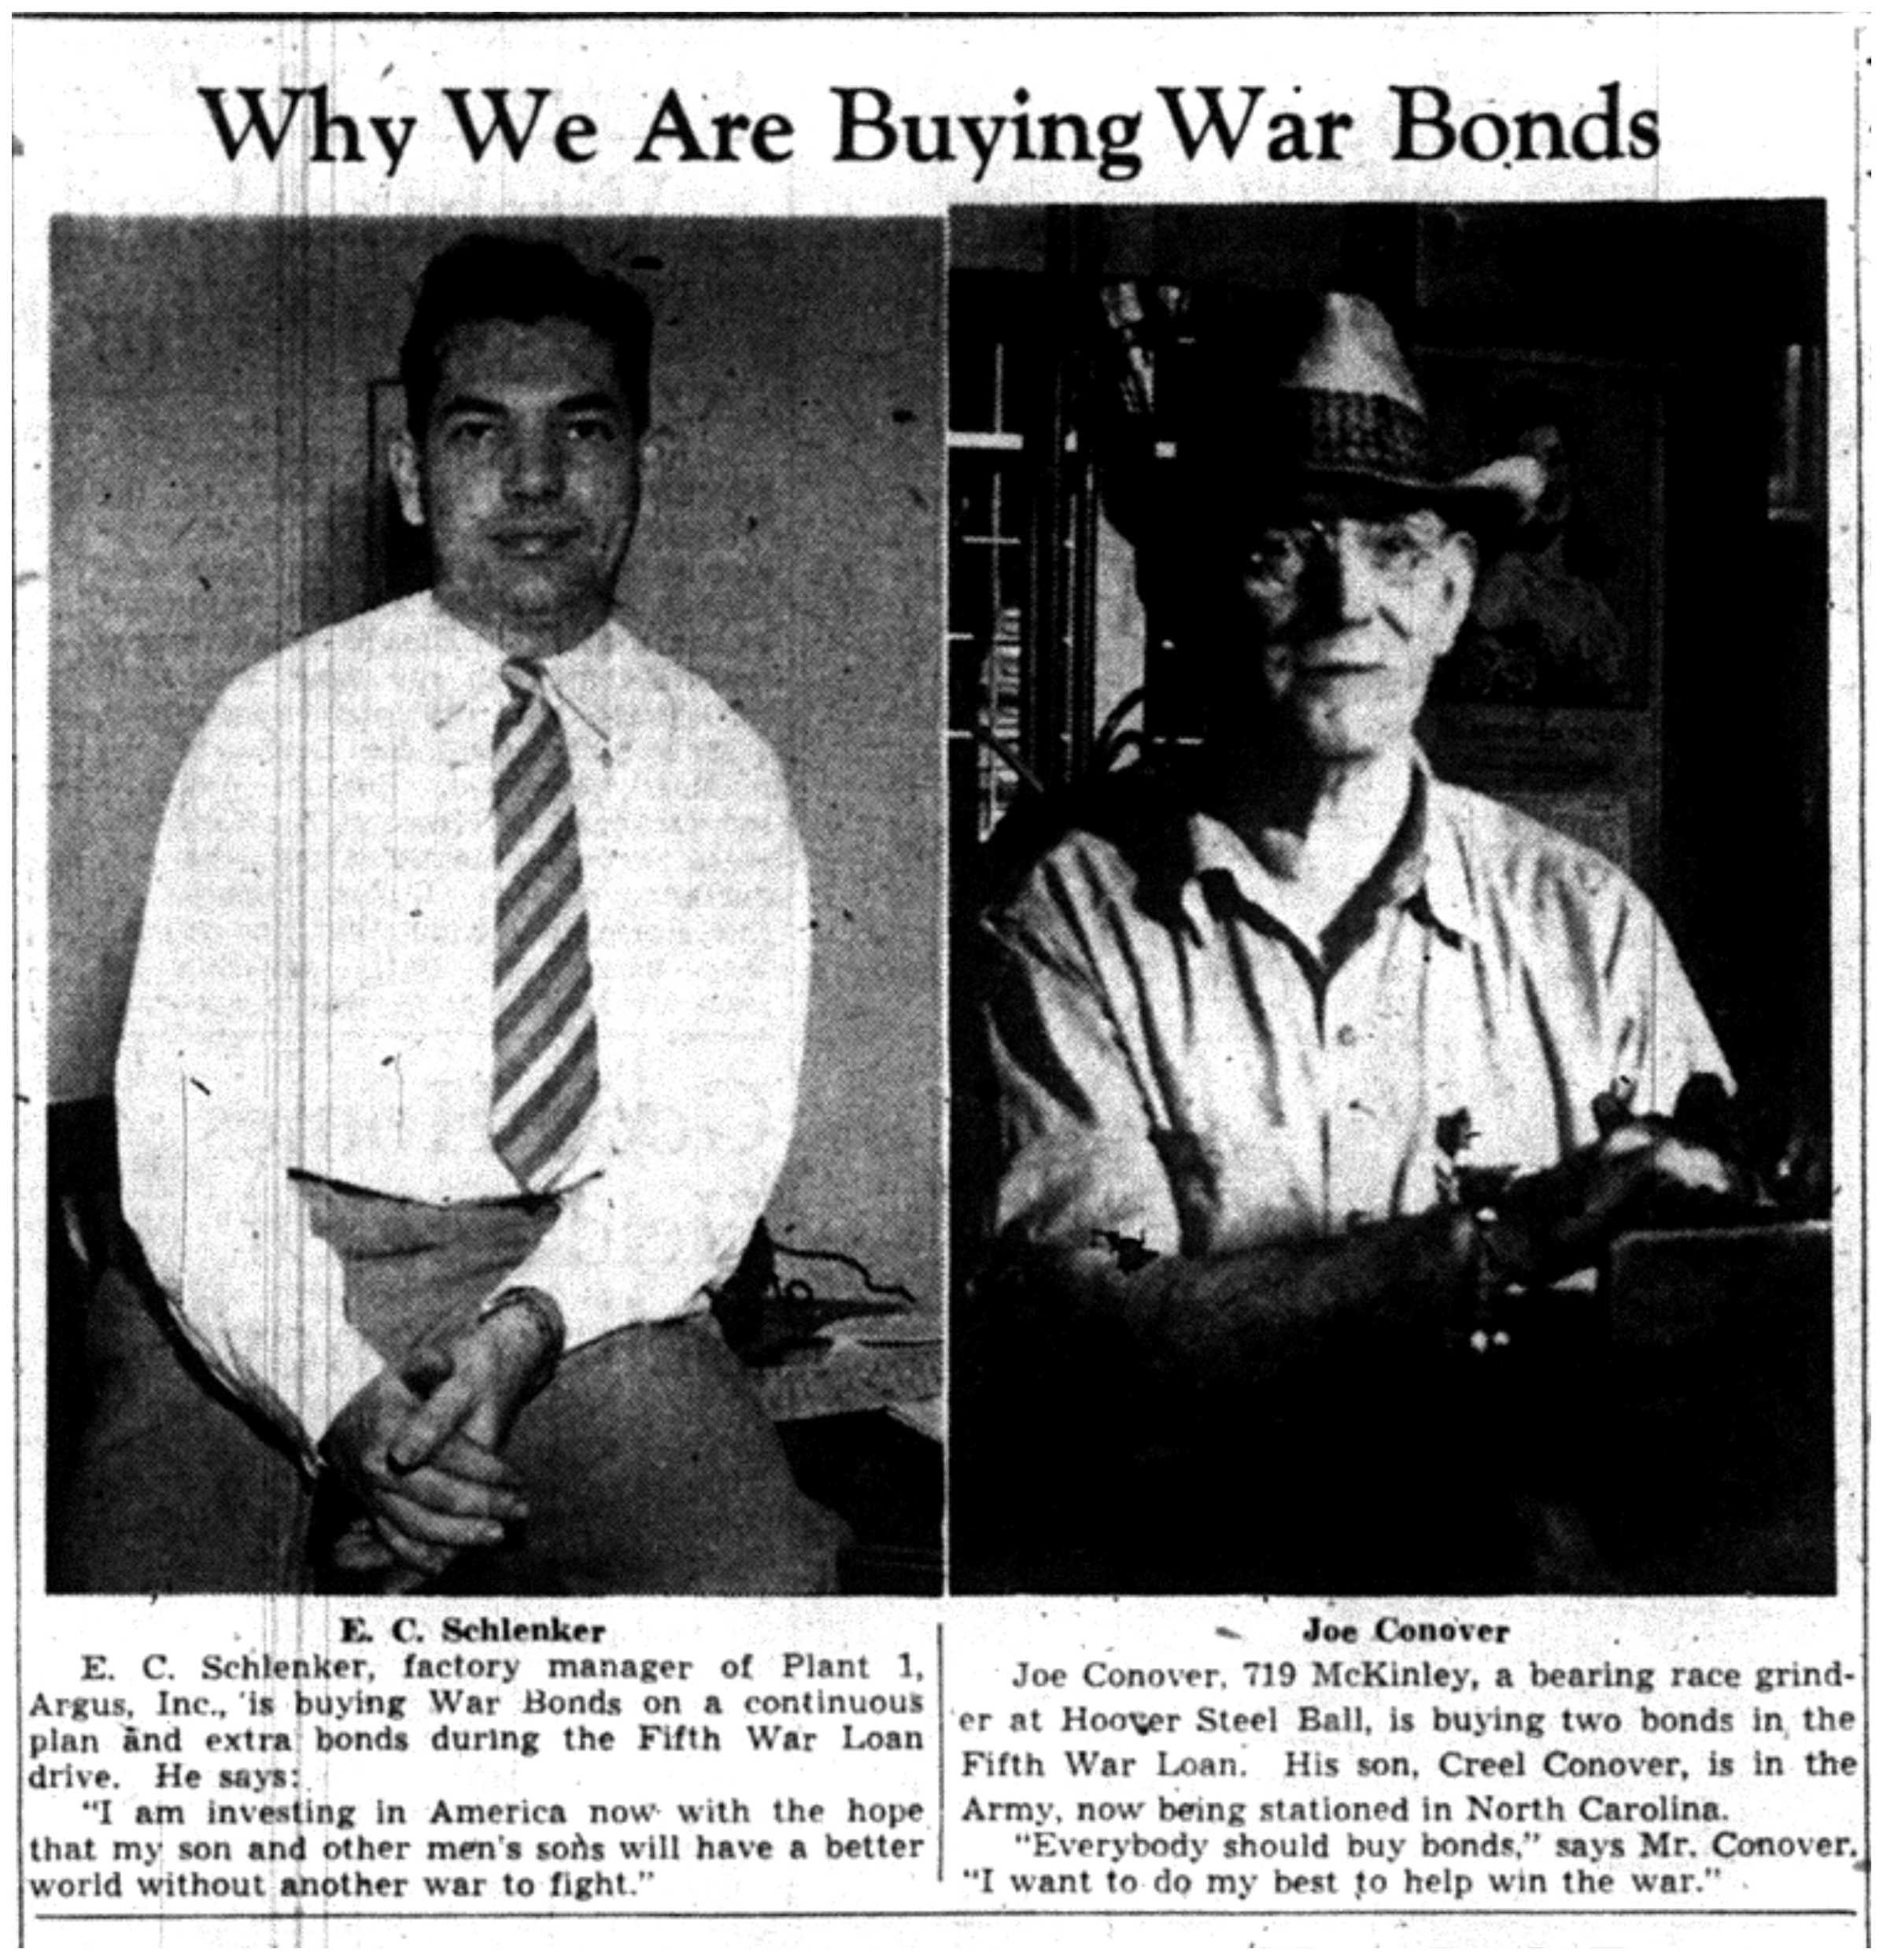 Why We Are Buying War Bonds image